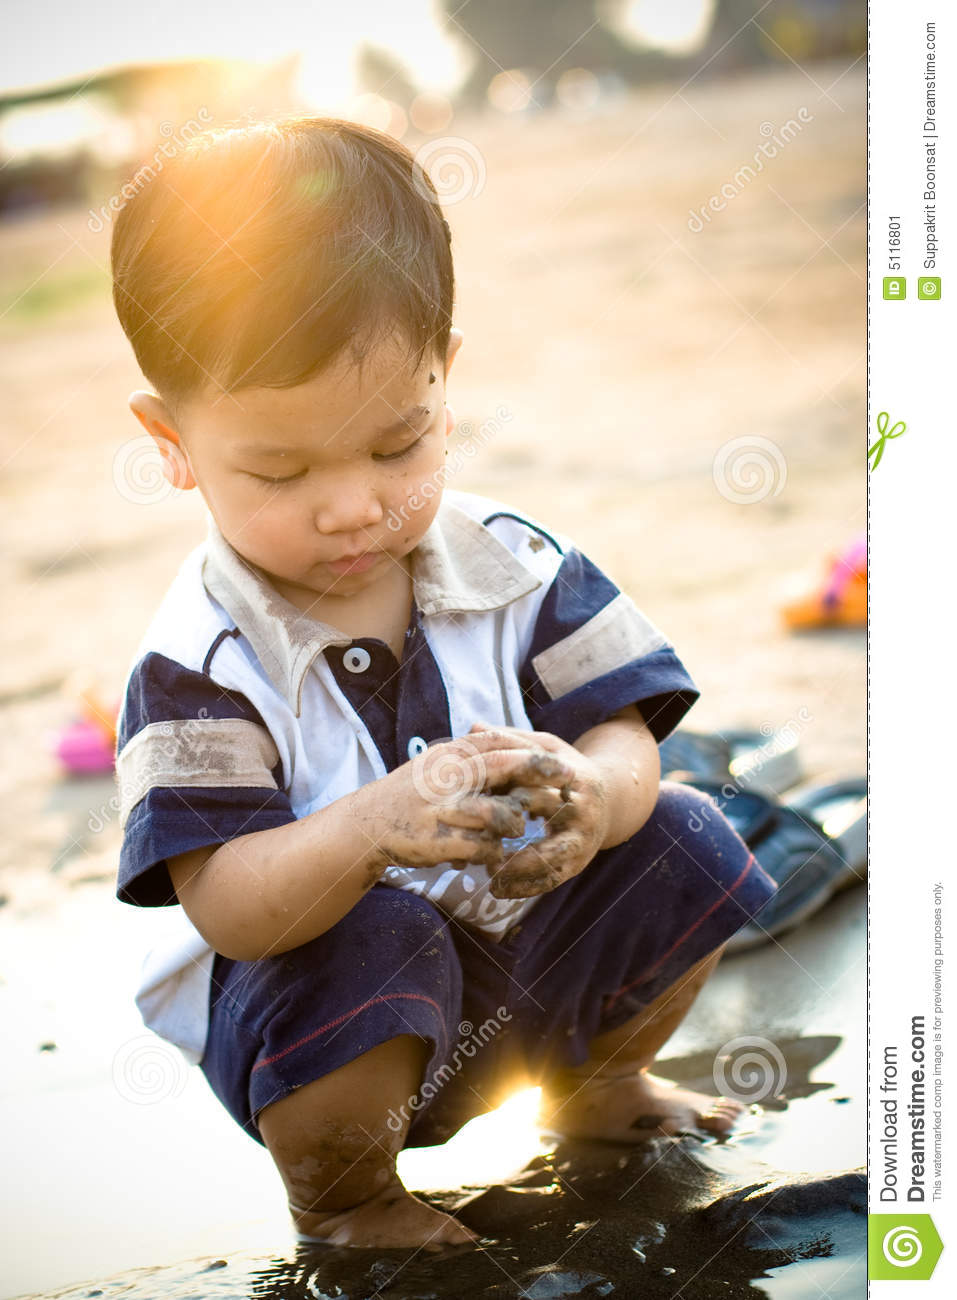 Boy Working And Playing In The Mud Stock Photo - Image of